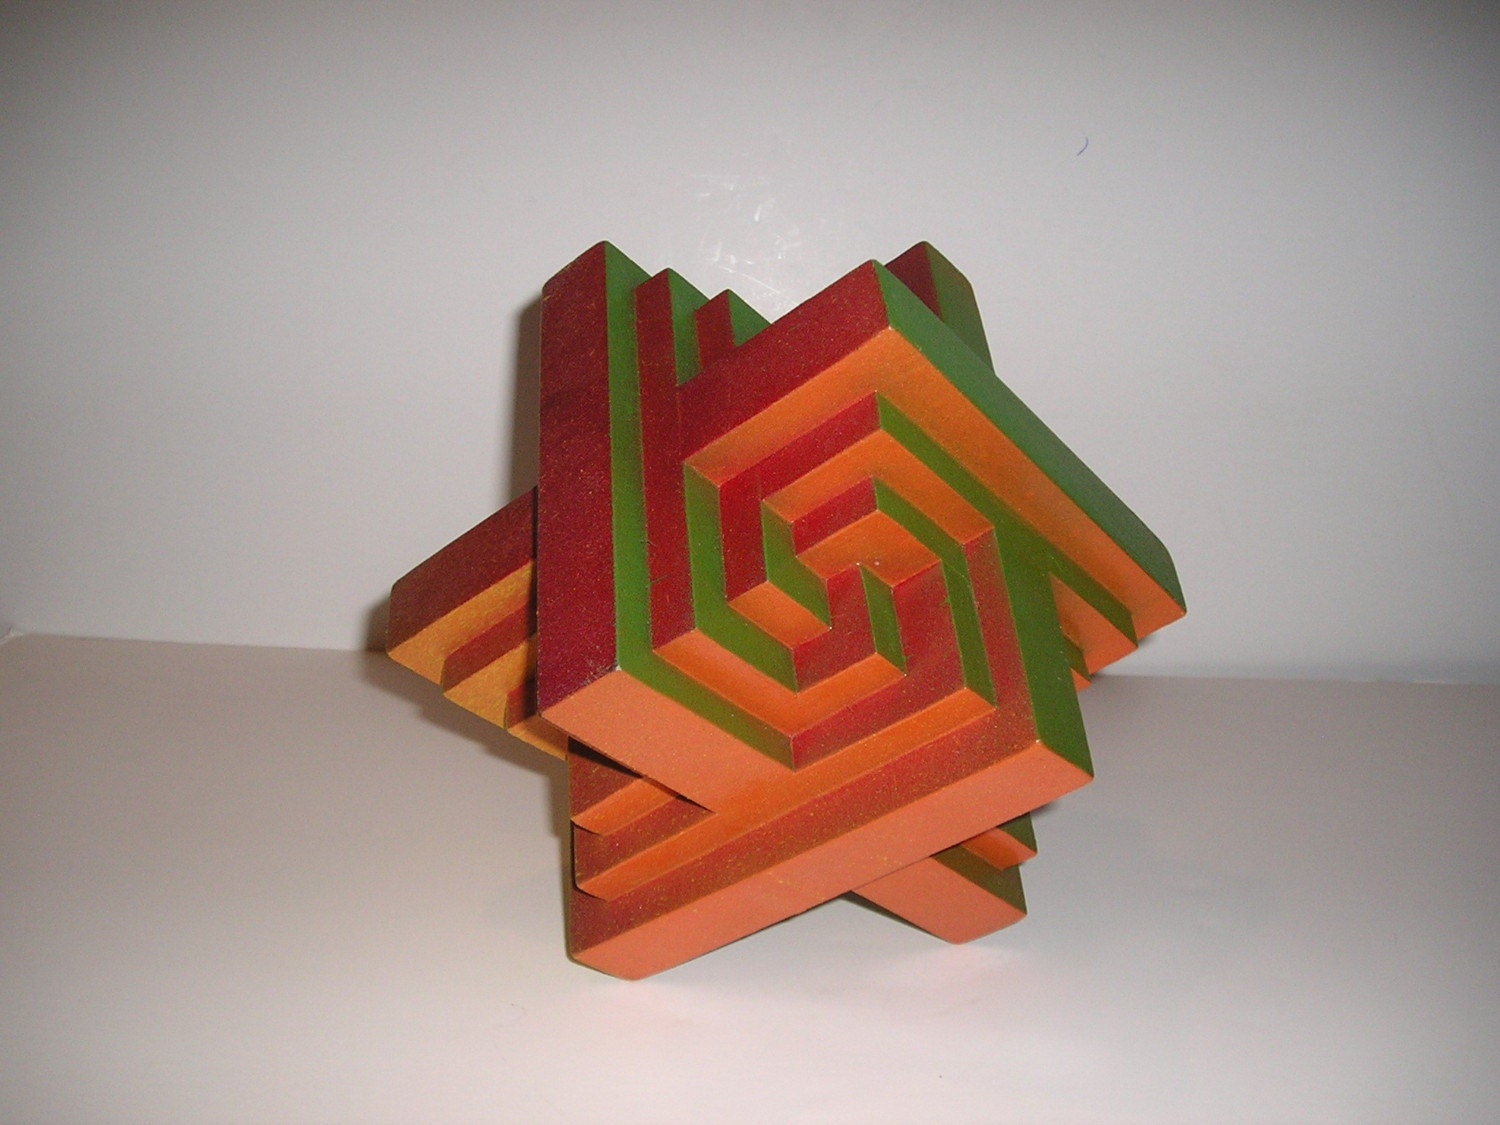 Nucleus geometric contemporary wooden abstract sculpture